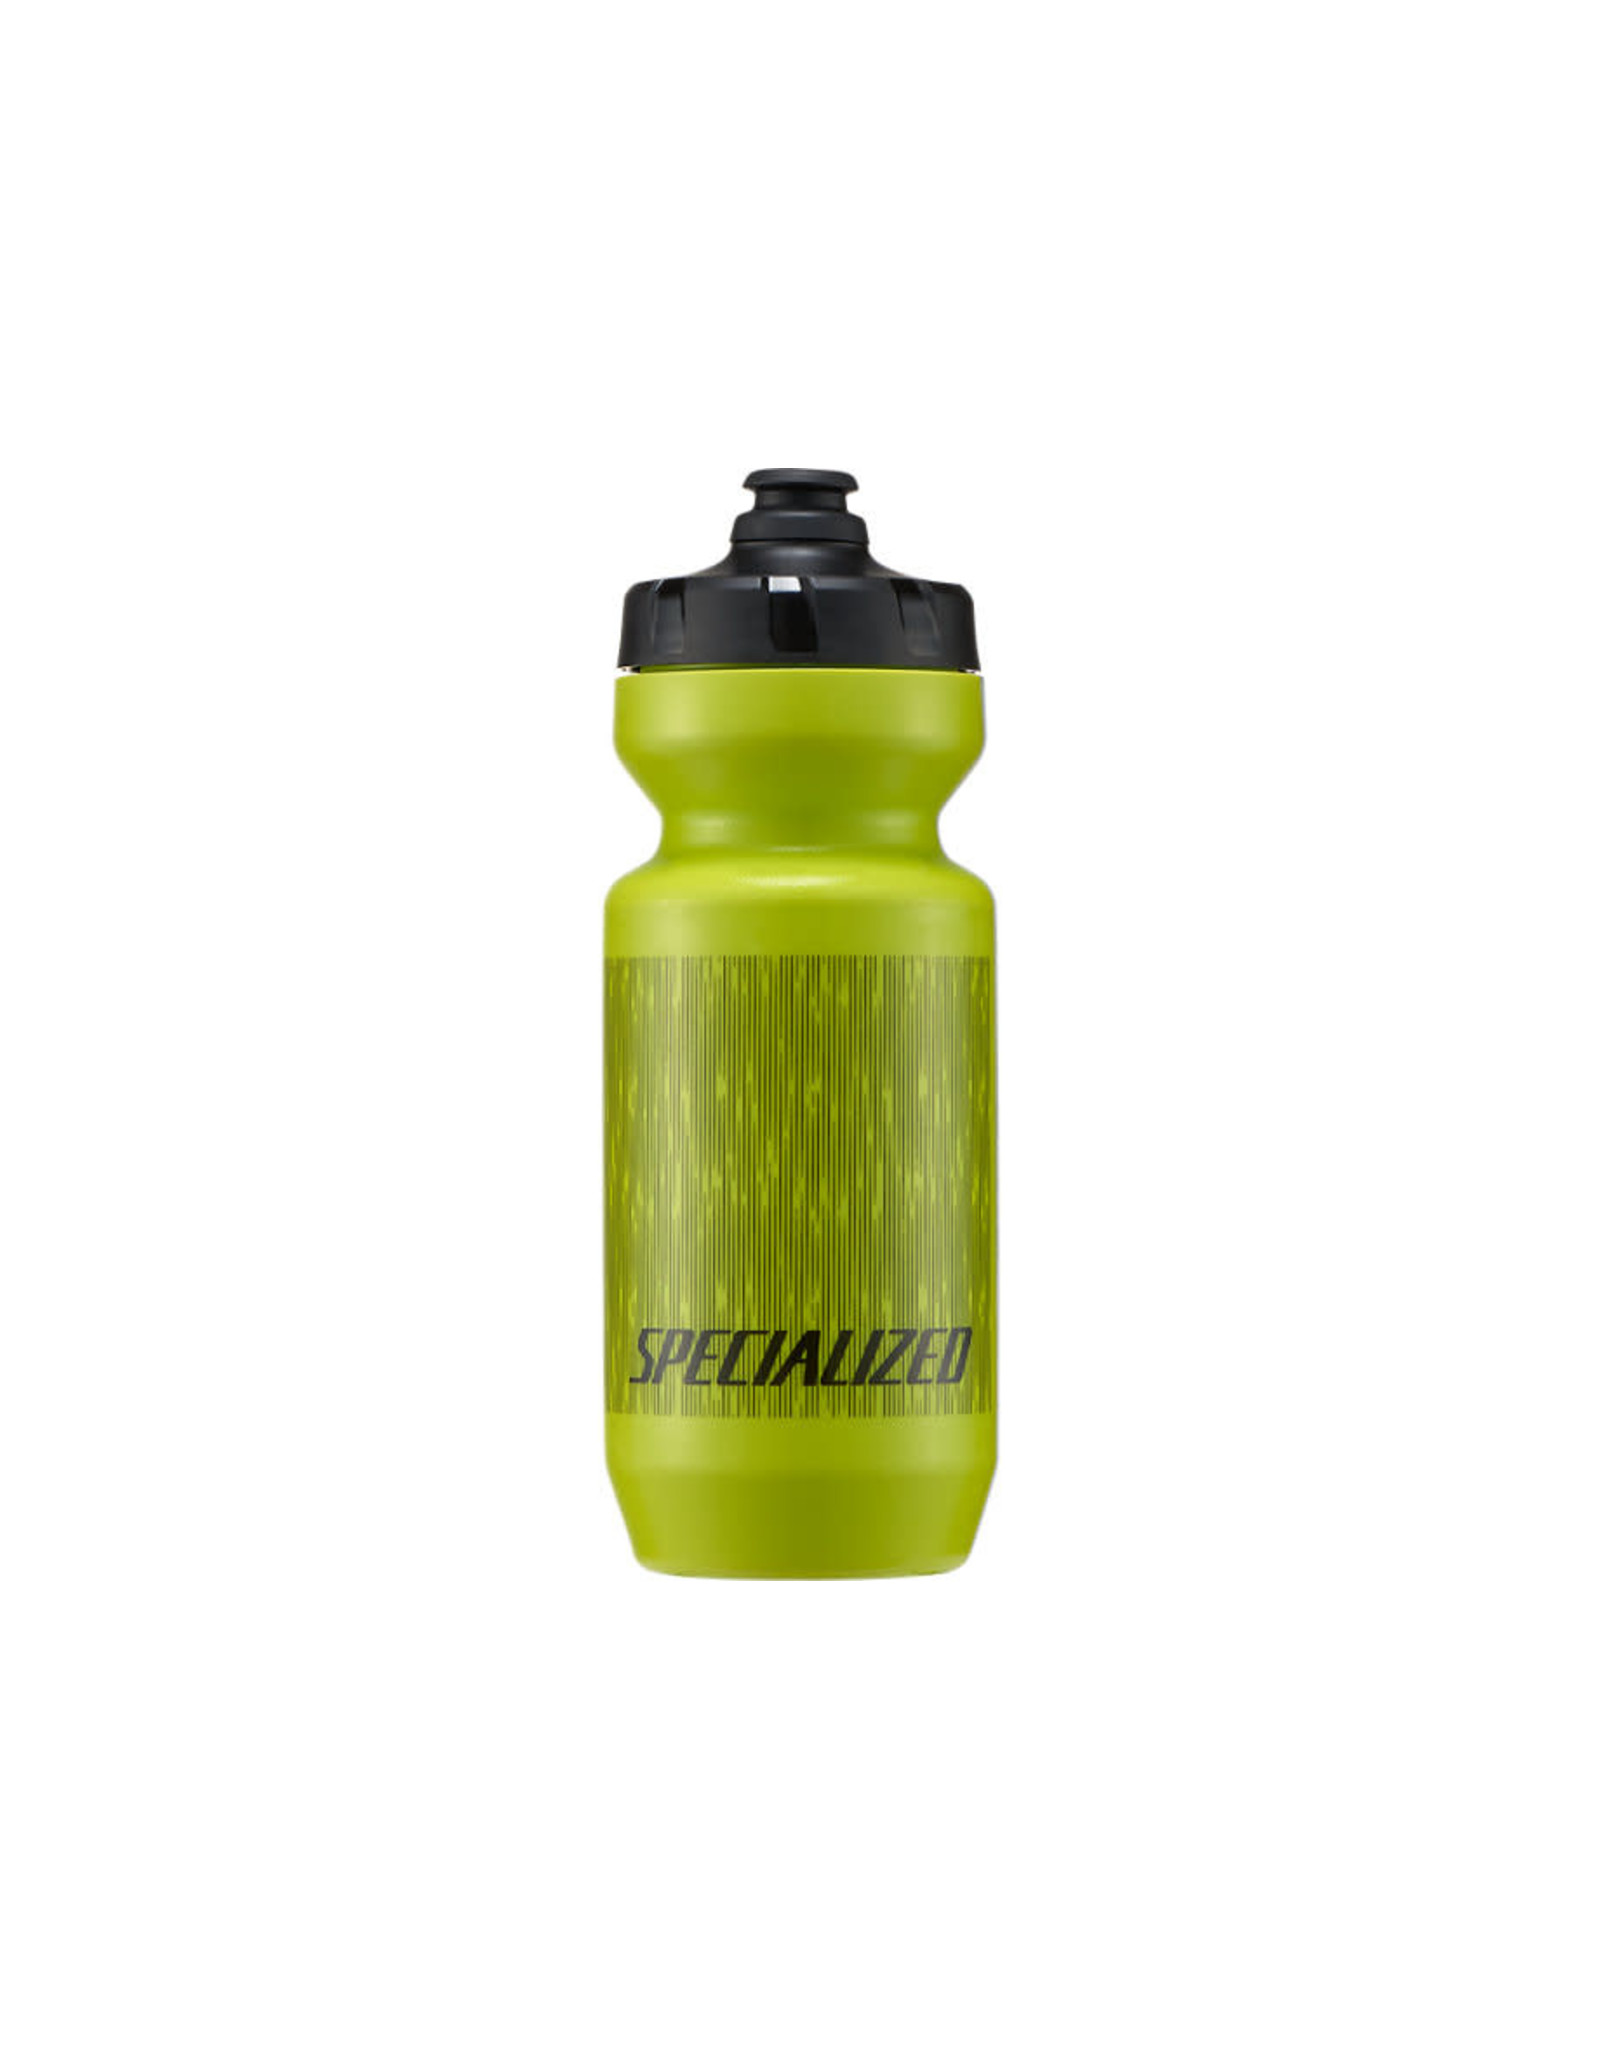 Specialized SPECIALIZED, Purist, Bottle